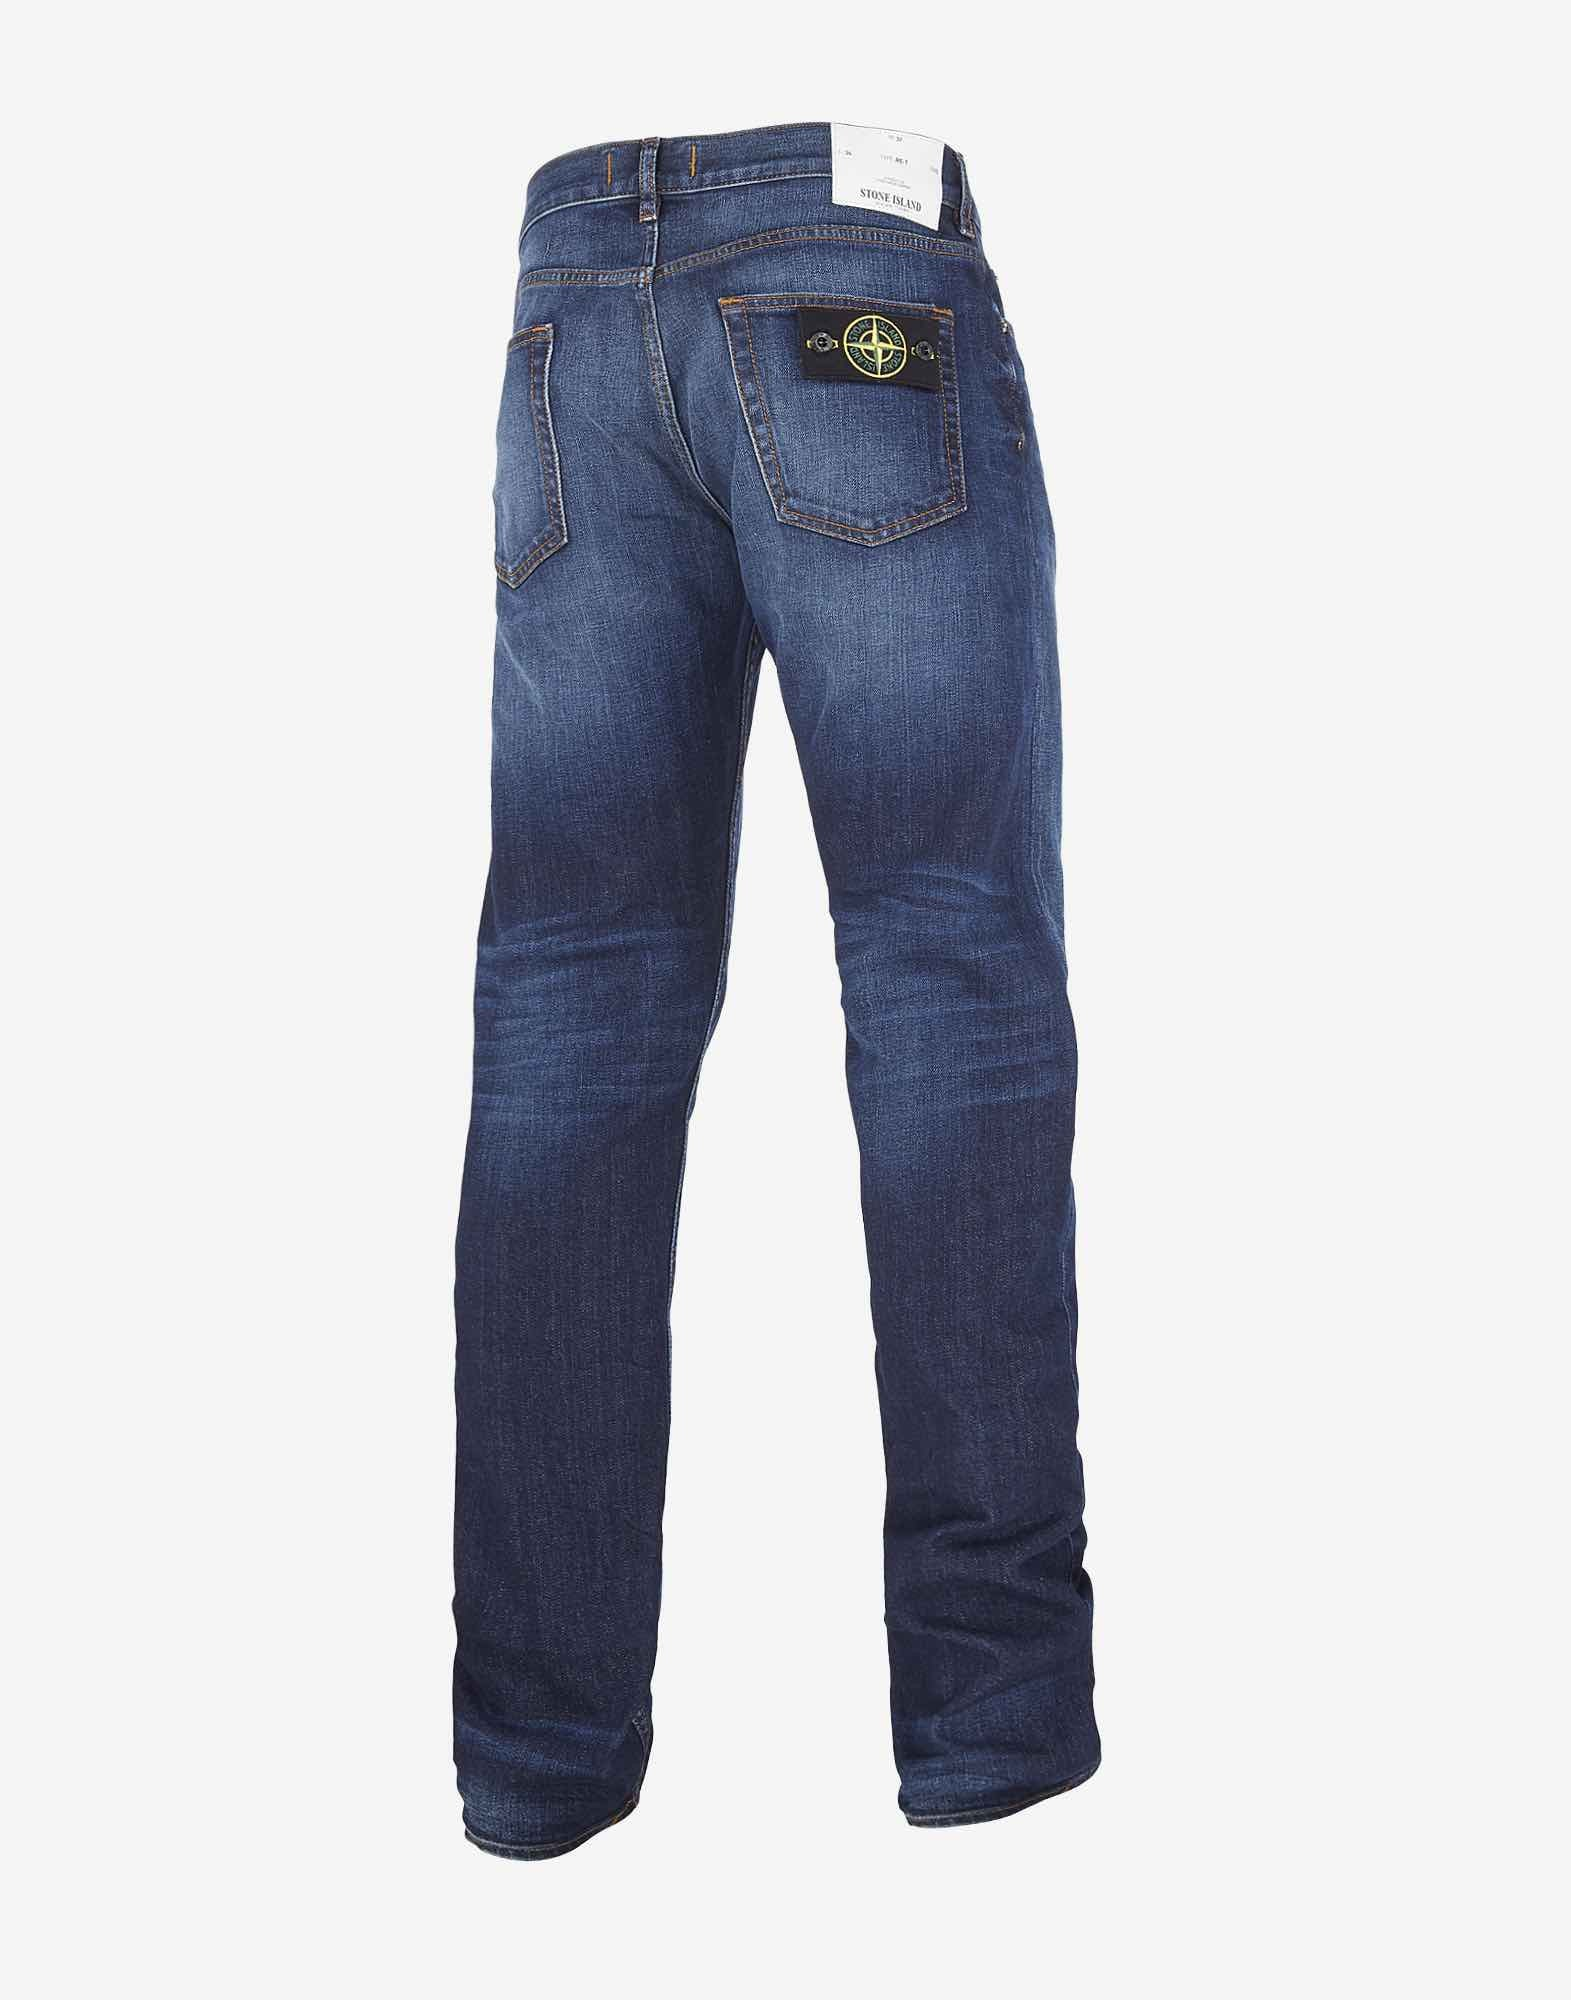 J4BGA RE_REAL Jeans in Indigo